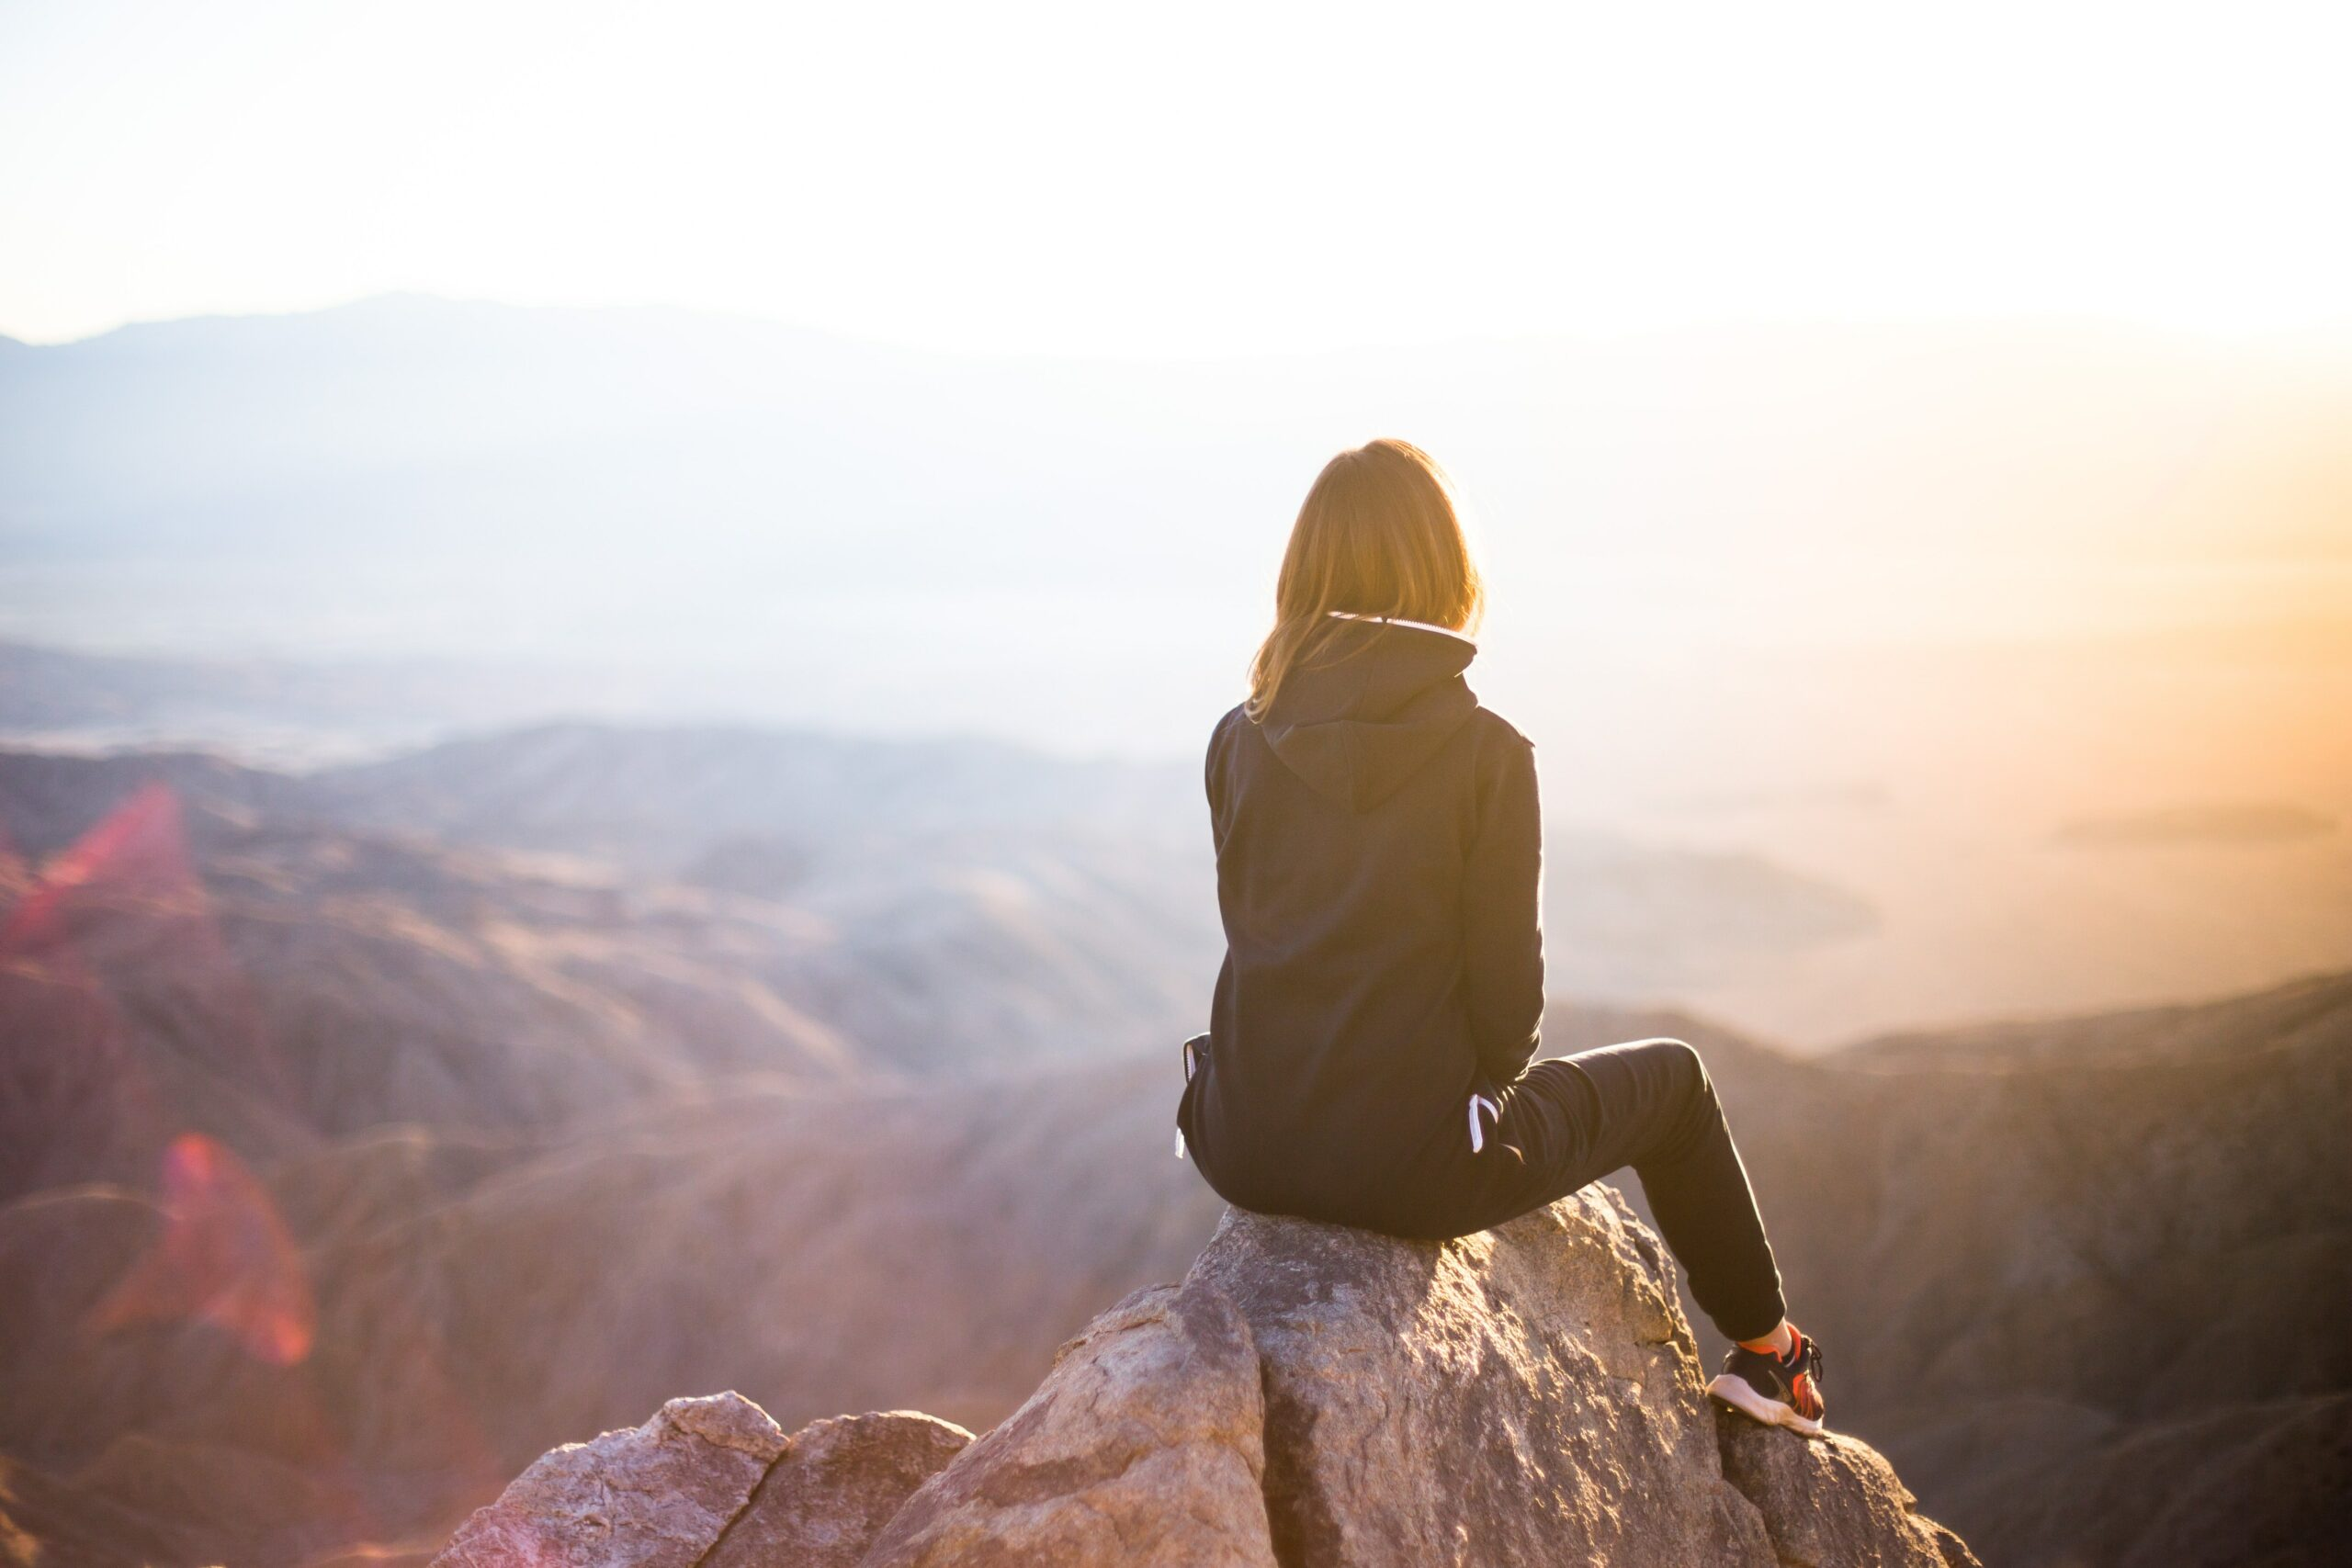 A woman sits on a rock facing out over a valley at sunset.